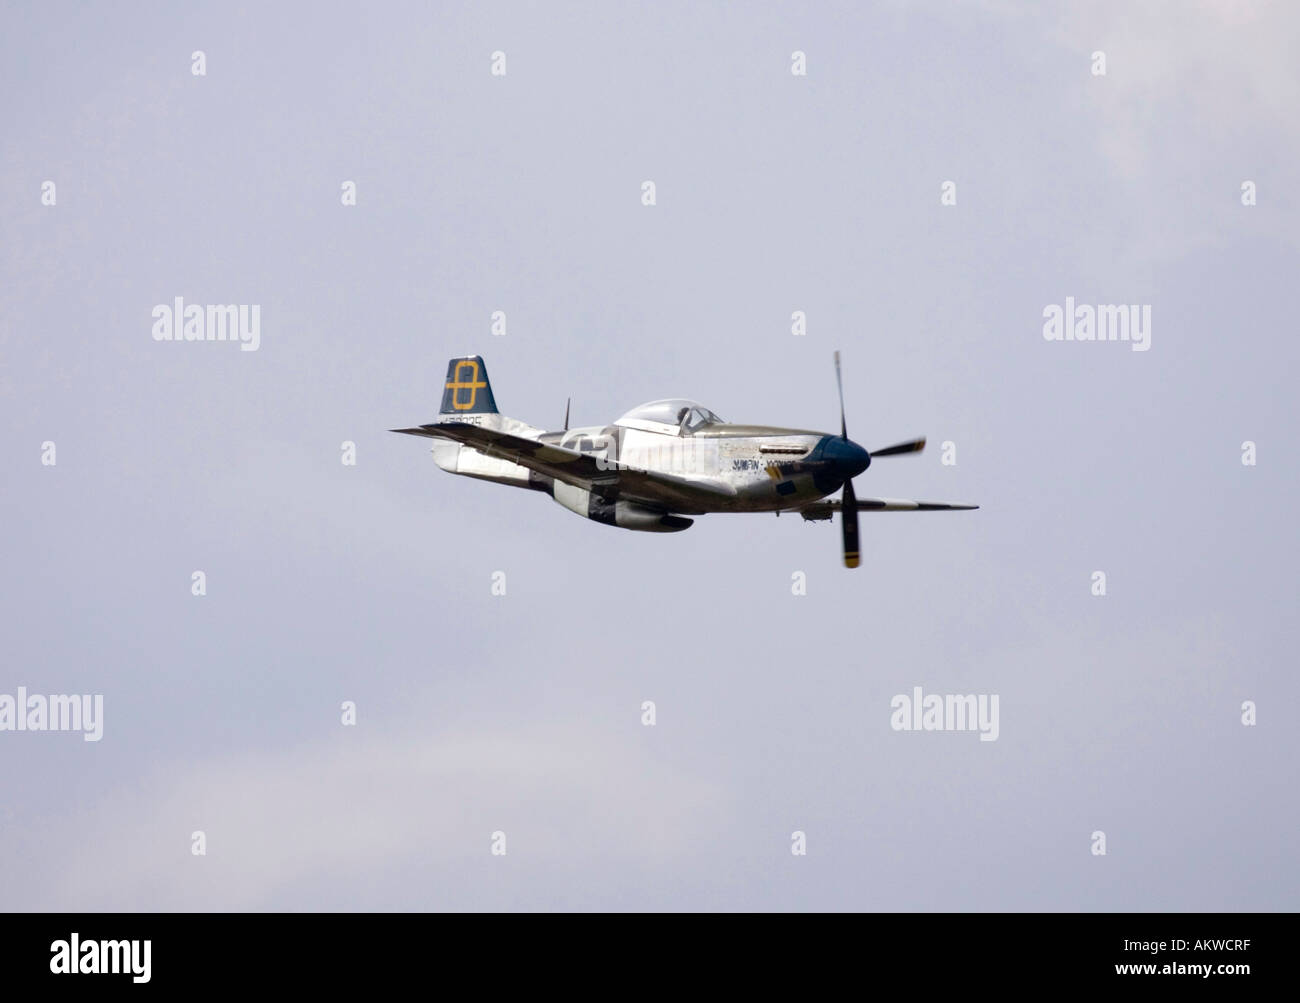 P-51 Mustang fighter aircraft at Rougham airshow August 2006 in Suffolk, UK - Stock Image